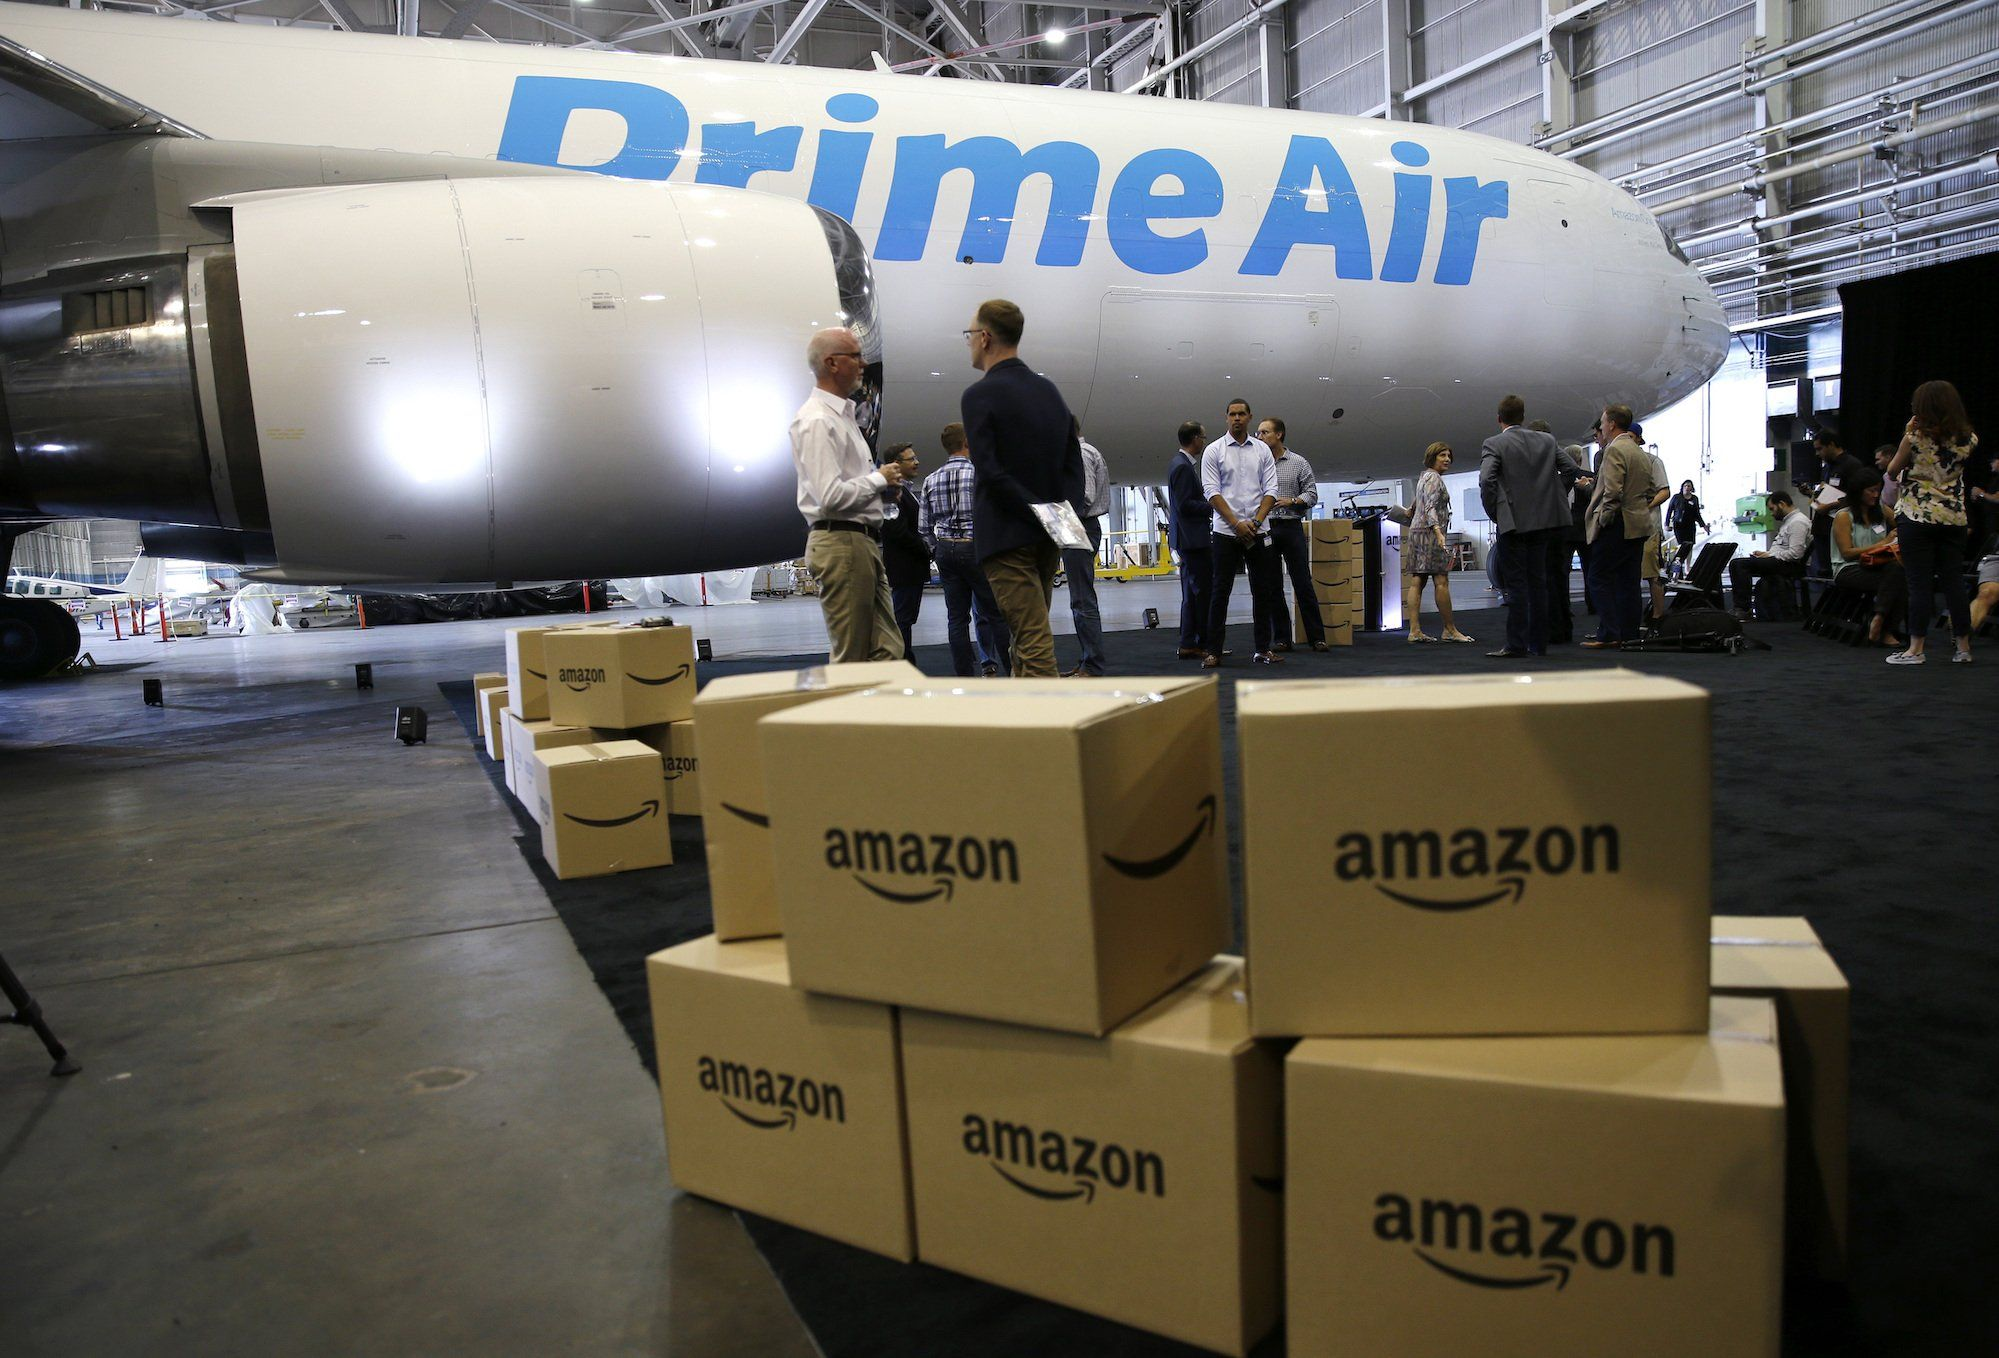 Amazon is building an air hub in Texas â and that means